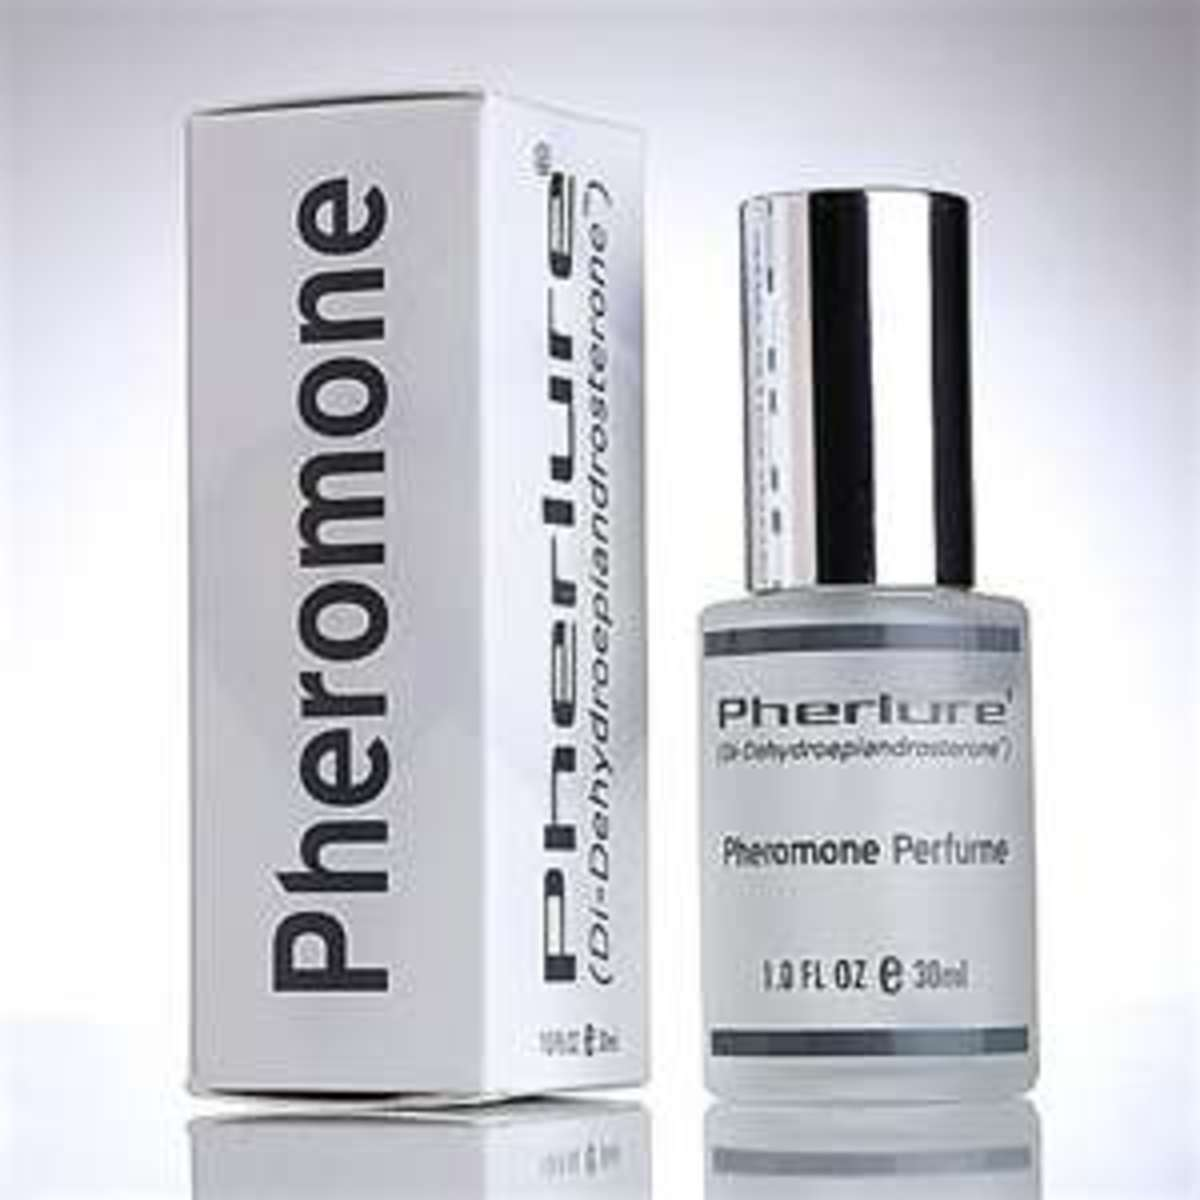 Pheromone Perfumes: The science of attraction